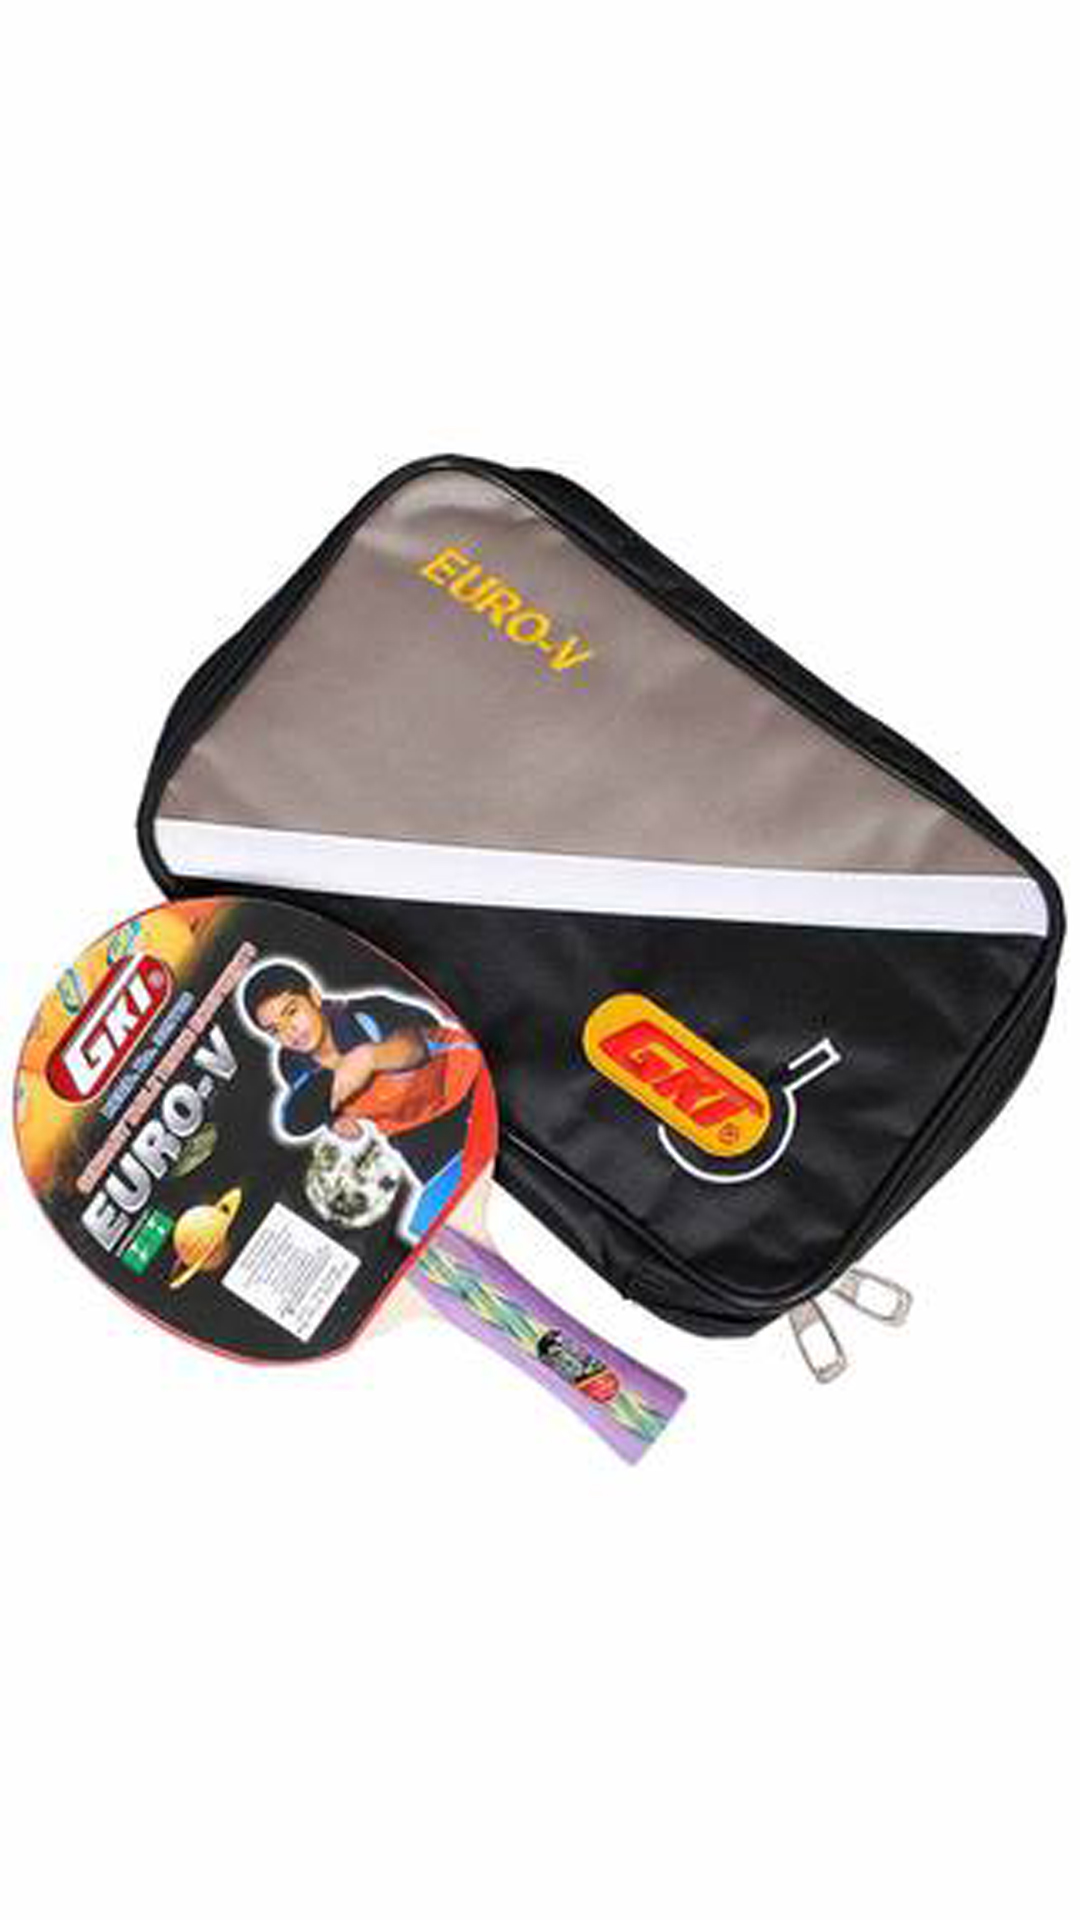 GKI Euro V Table Tennis Bat With Soft Tatron Cover